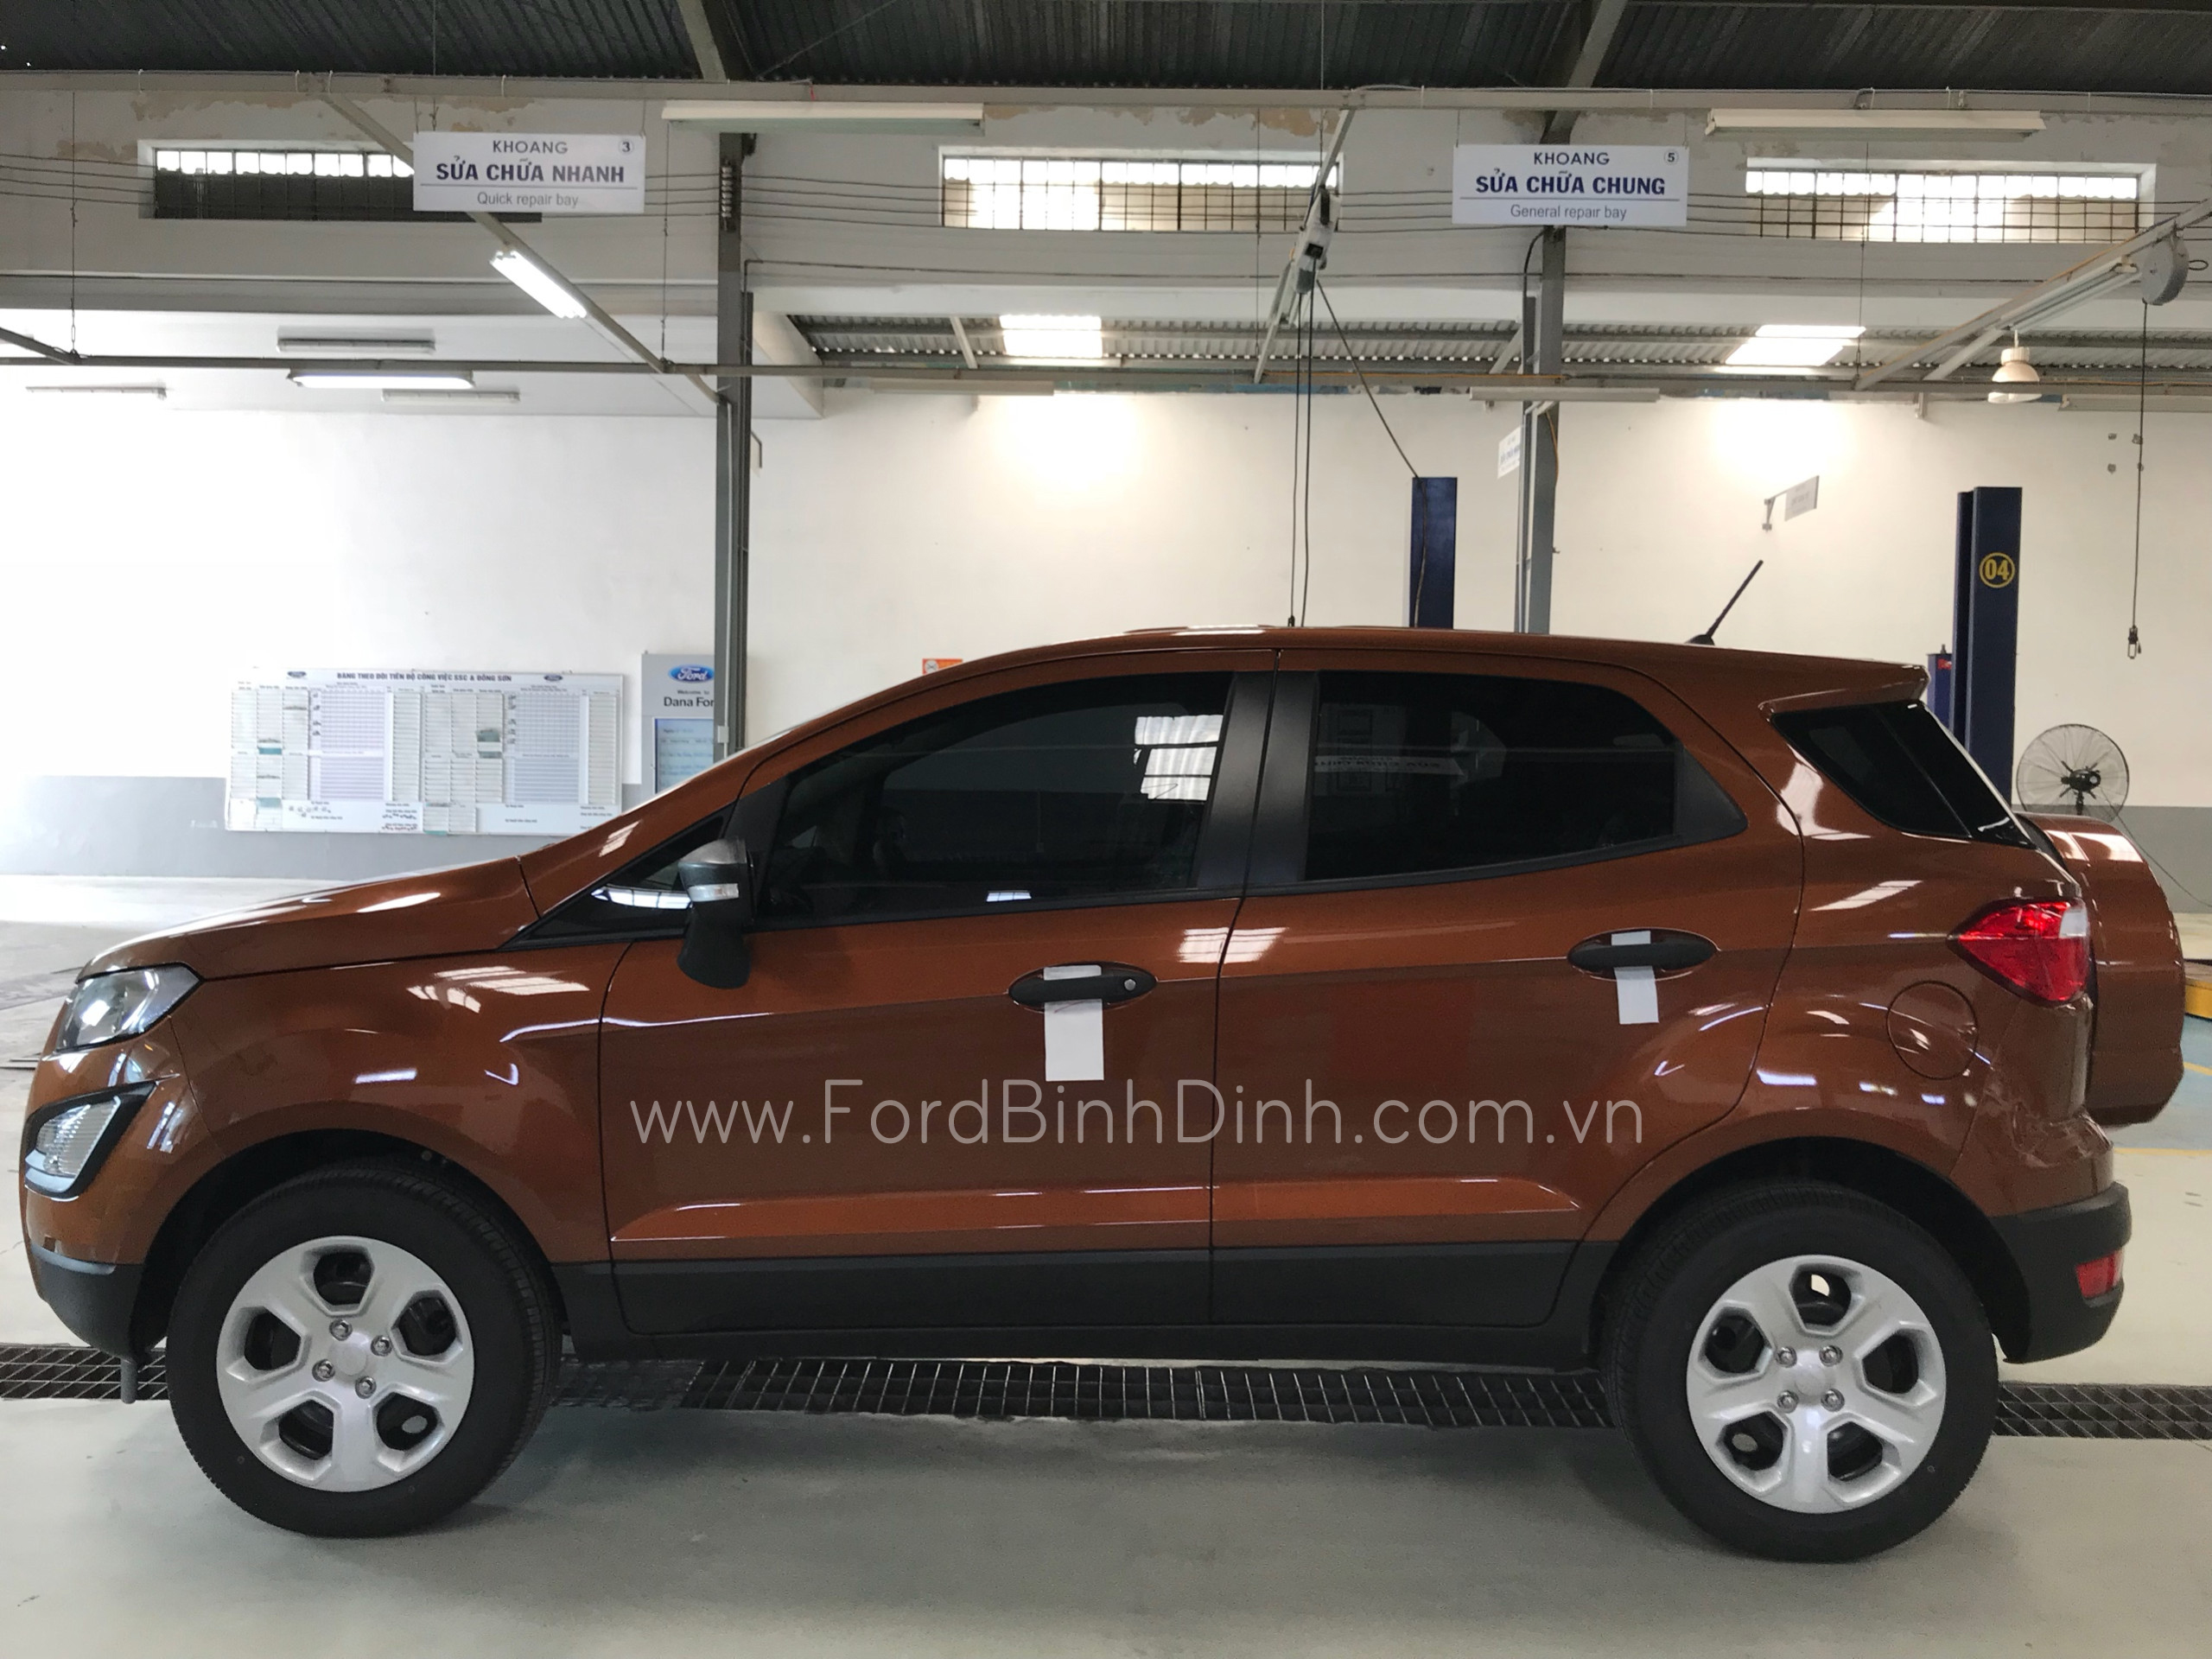 ecosport-1.5l-ambiente-at-ford-binh-dinh-com-vn-2